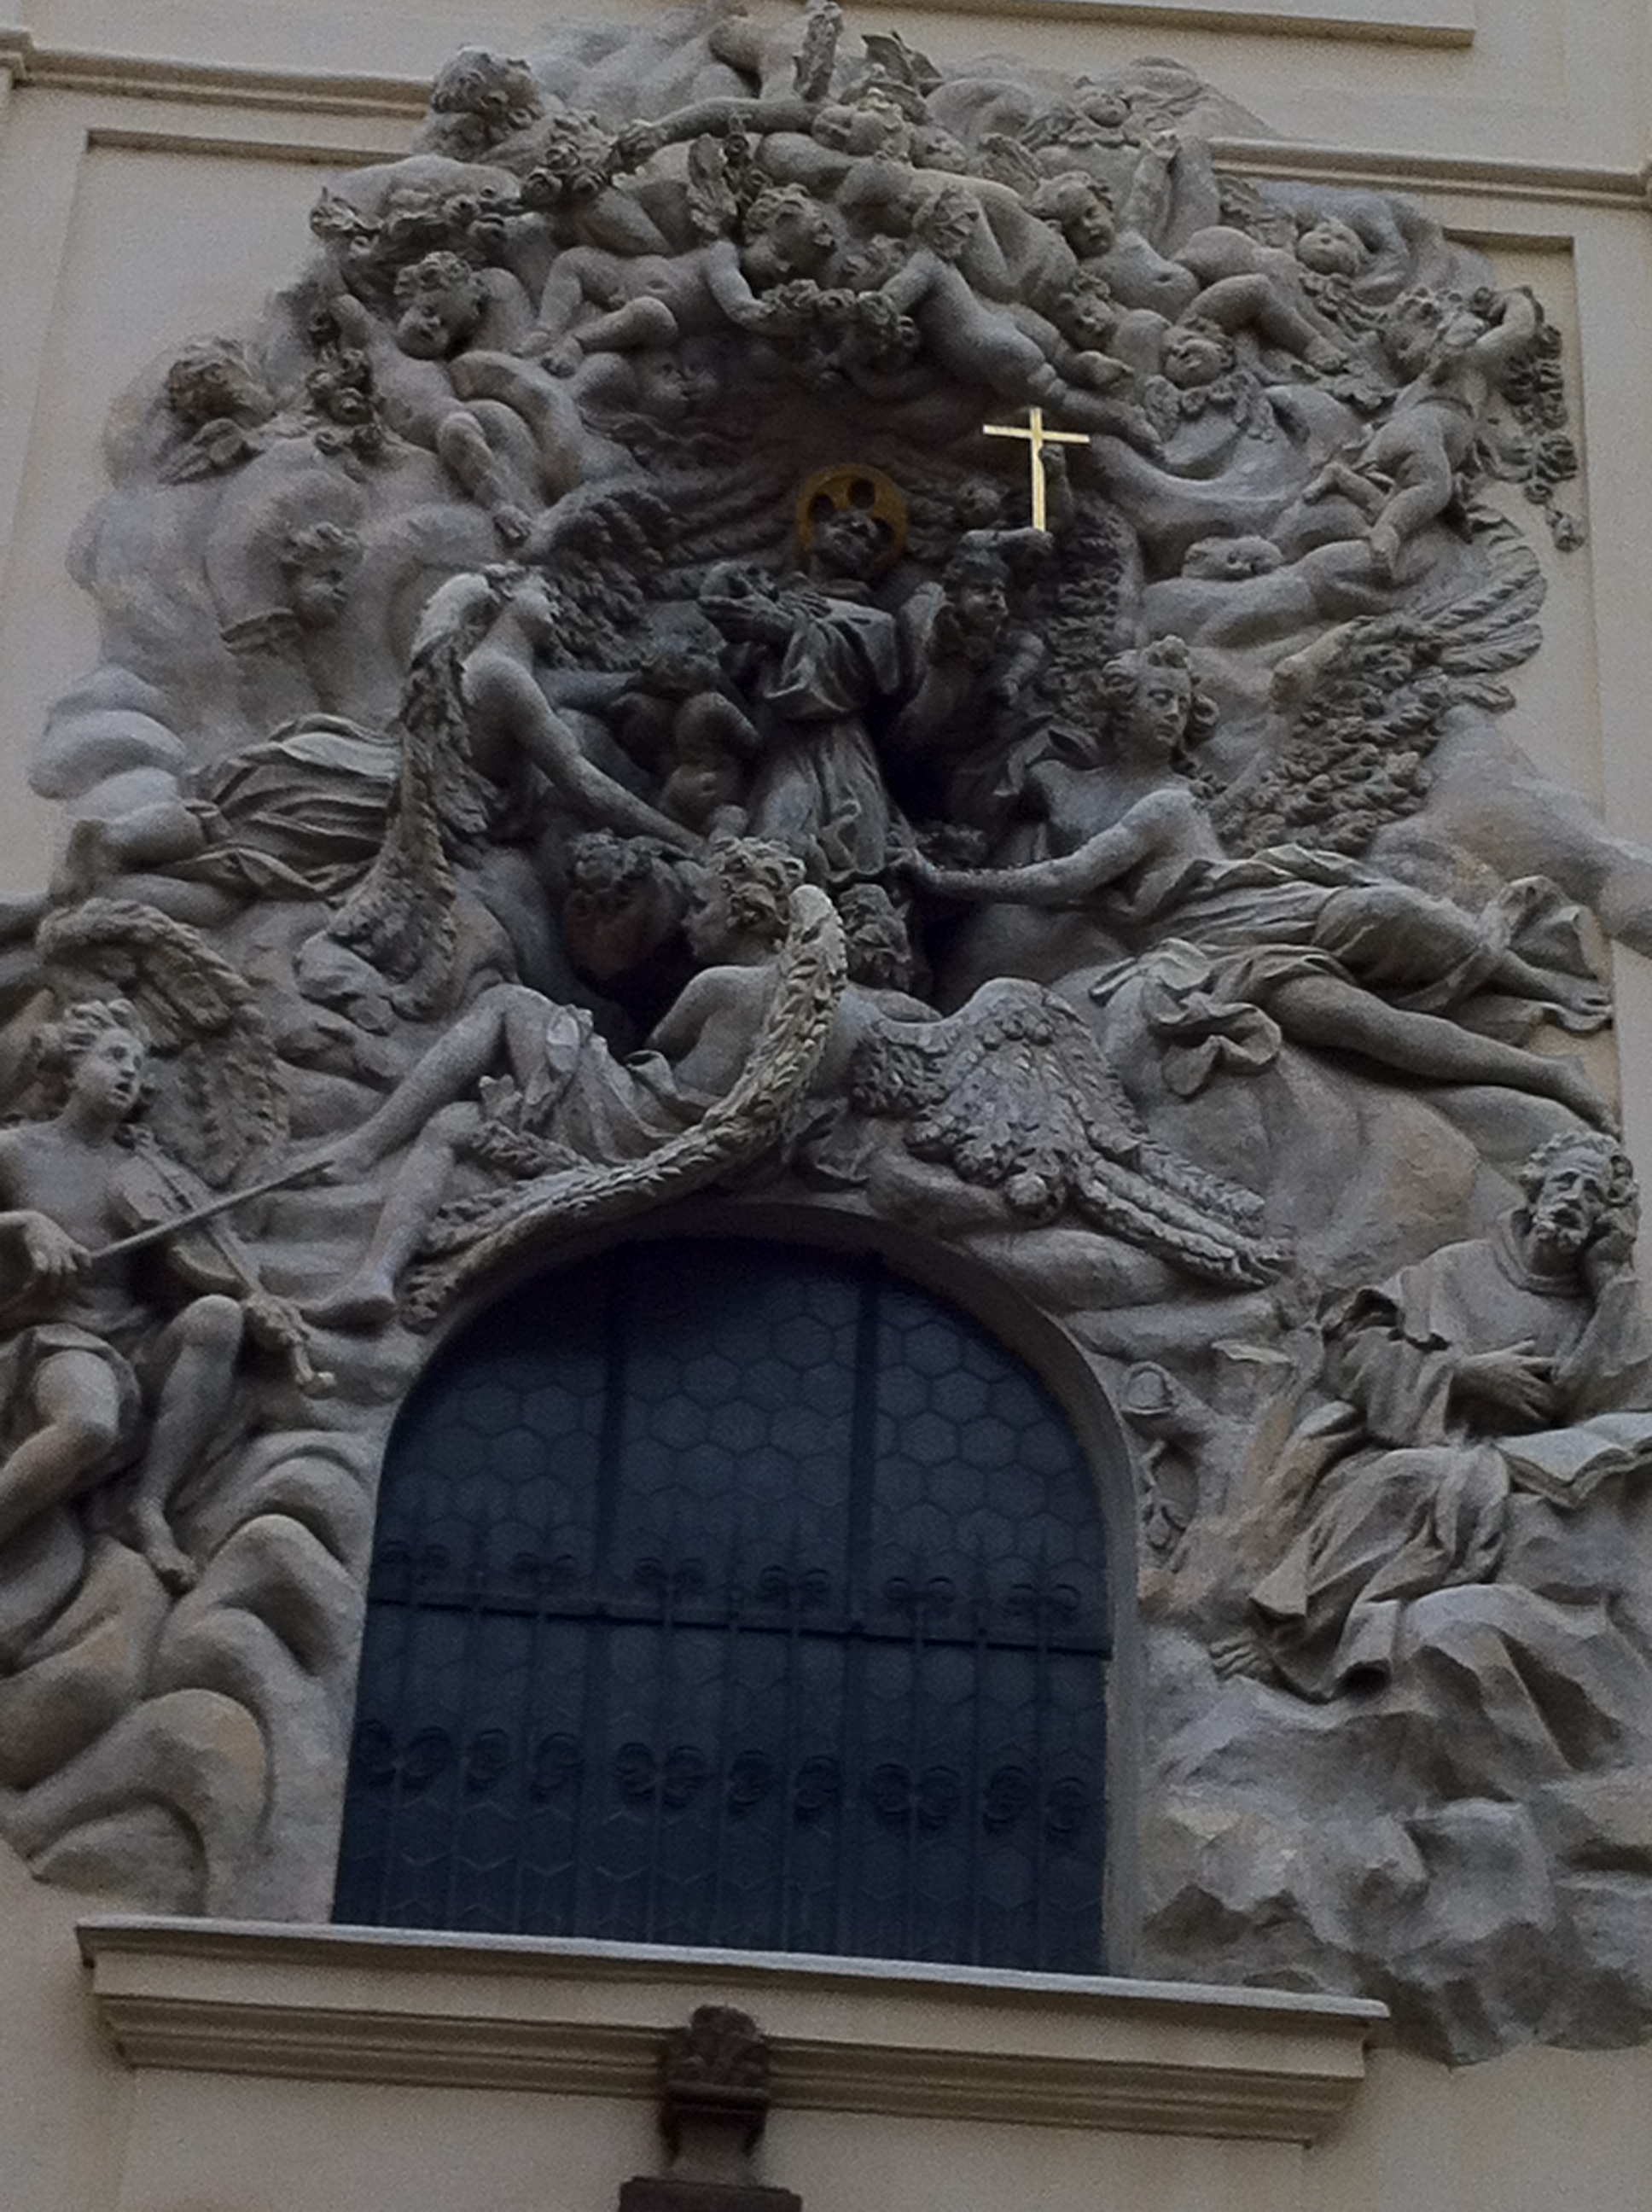 This carving is from the facade of St. Jakob's Church, the parish of the Butcher's Guild near the German merchant colony/neighborhood of the Ungelt.